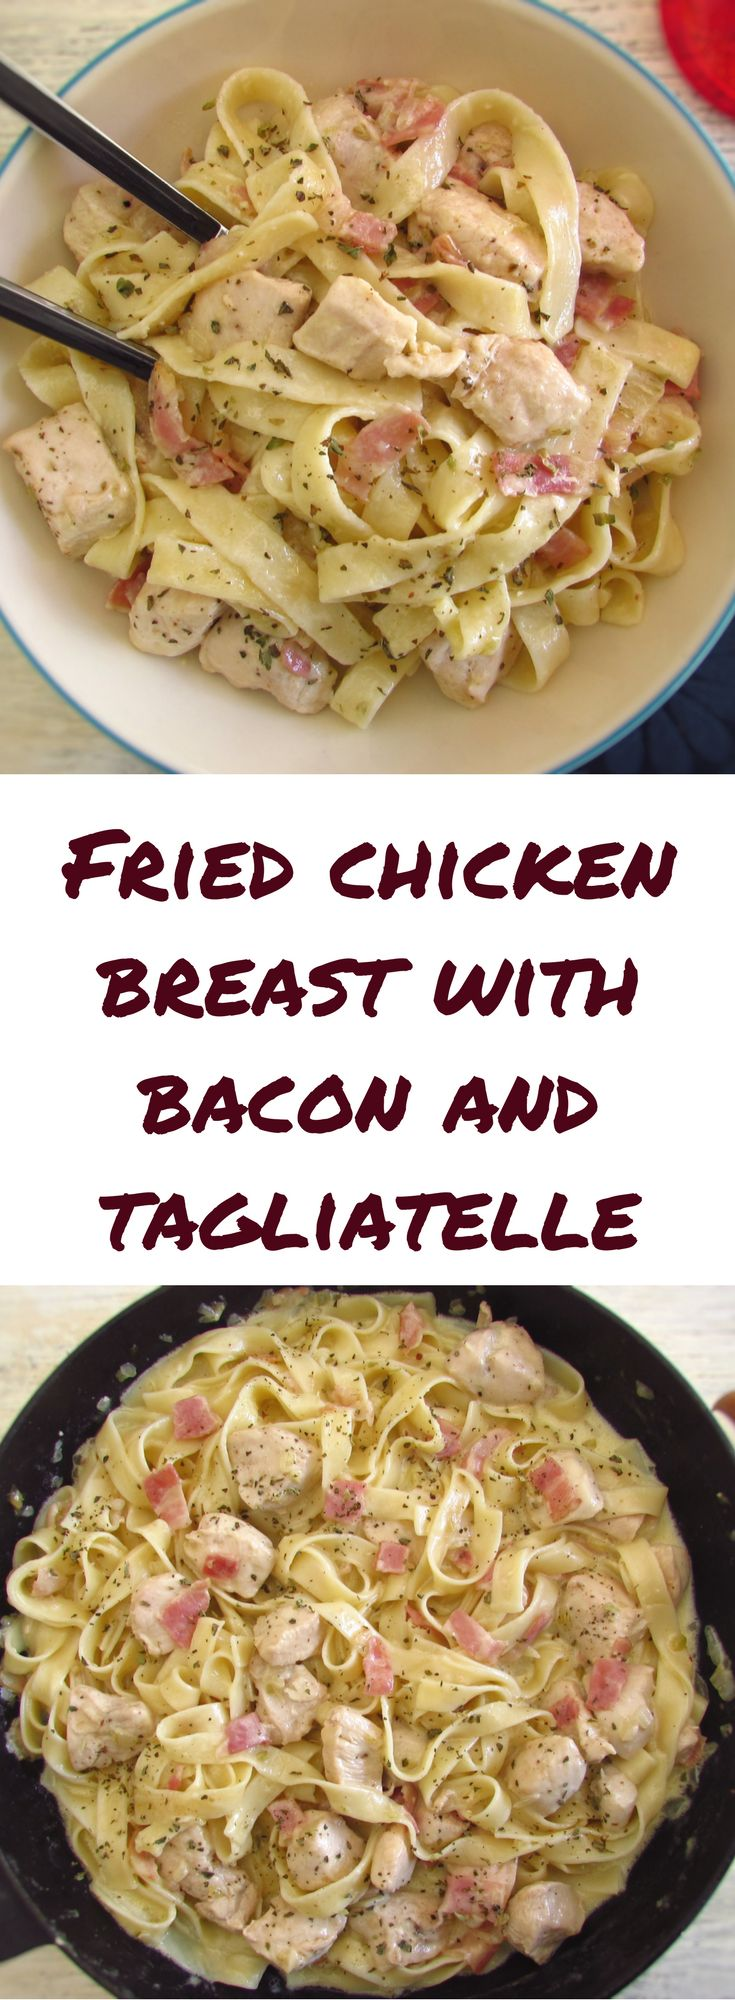 Fried chicken breast with bacon and tagliatelle | Food From Portugal. If you want to prepare a simple and quick meal for dinner we have the ideal solution for you! This chicken recipe mixed with bacon and tagliatelle is delicious! Try, you'll love it... #chicken #tagliatelle #recipe #bacon